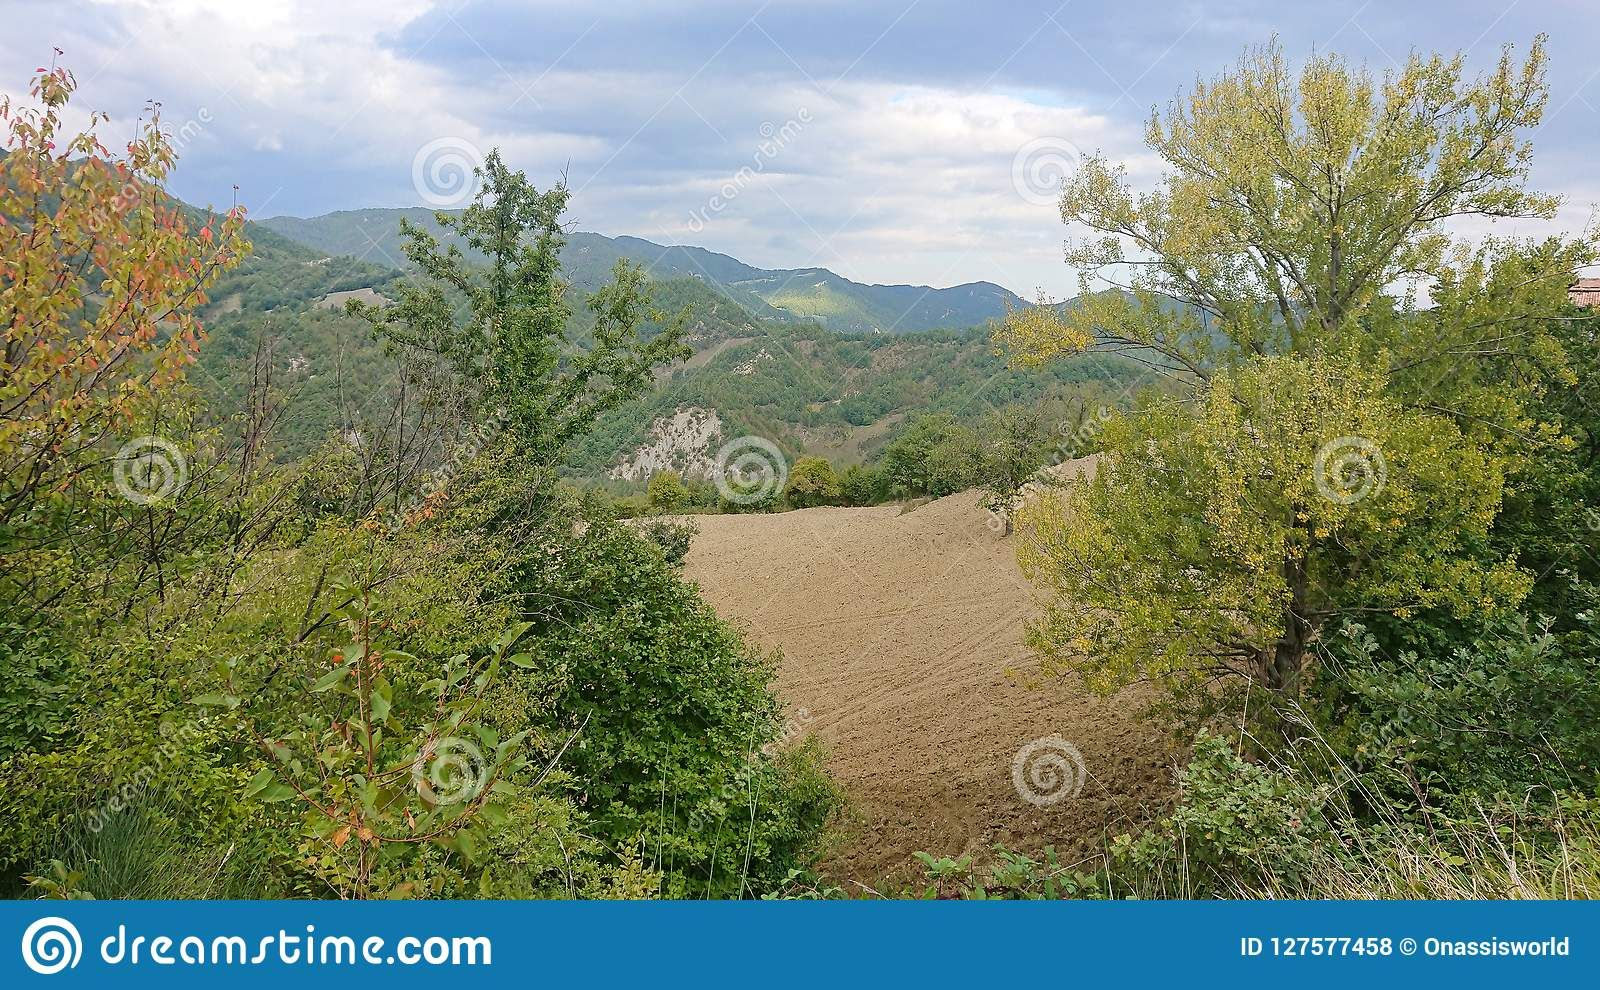 Photo About A Panoramic Landscape Of Green Fields Mountains And Trees Image Of Mountains Fields Landscape 1275774 Country Landscaping Landscape Panoramic